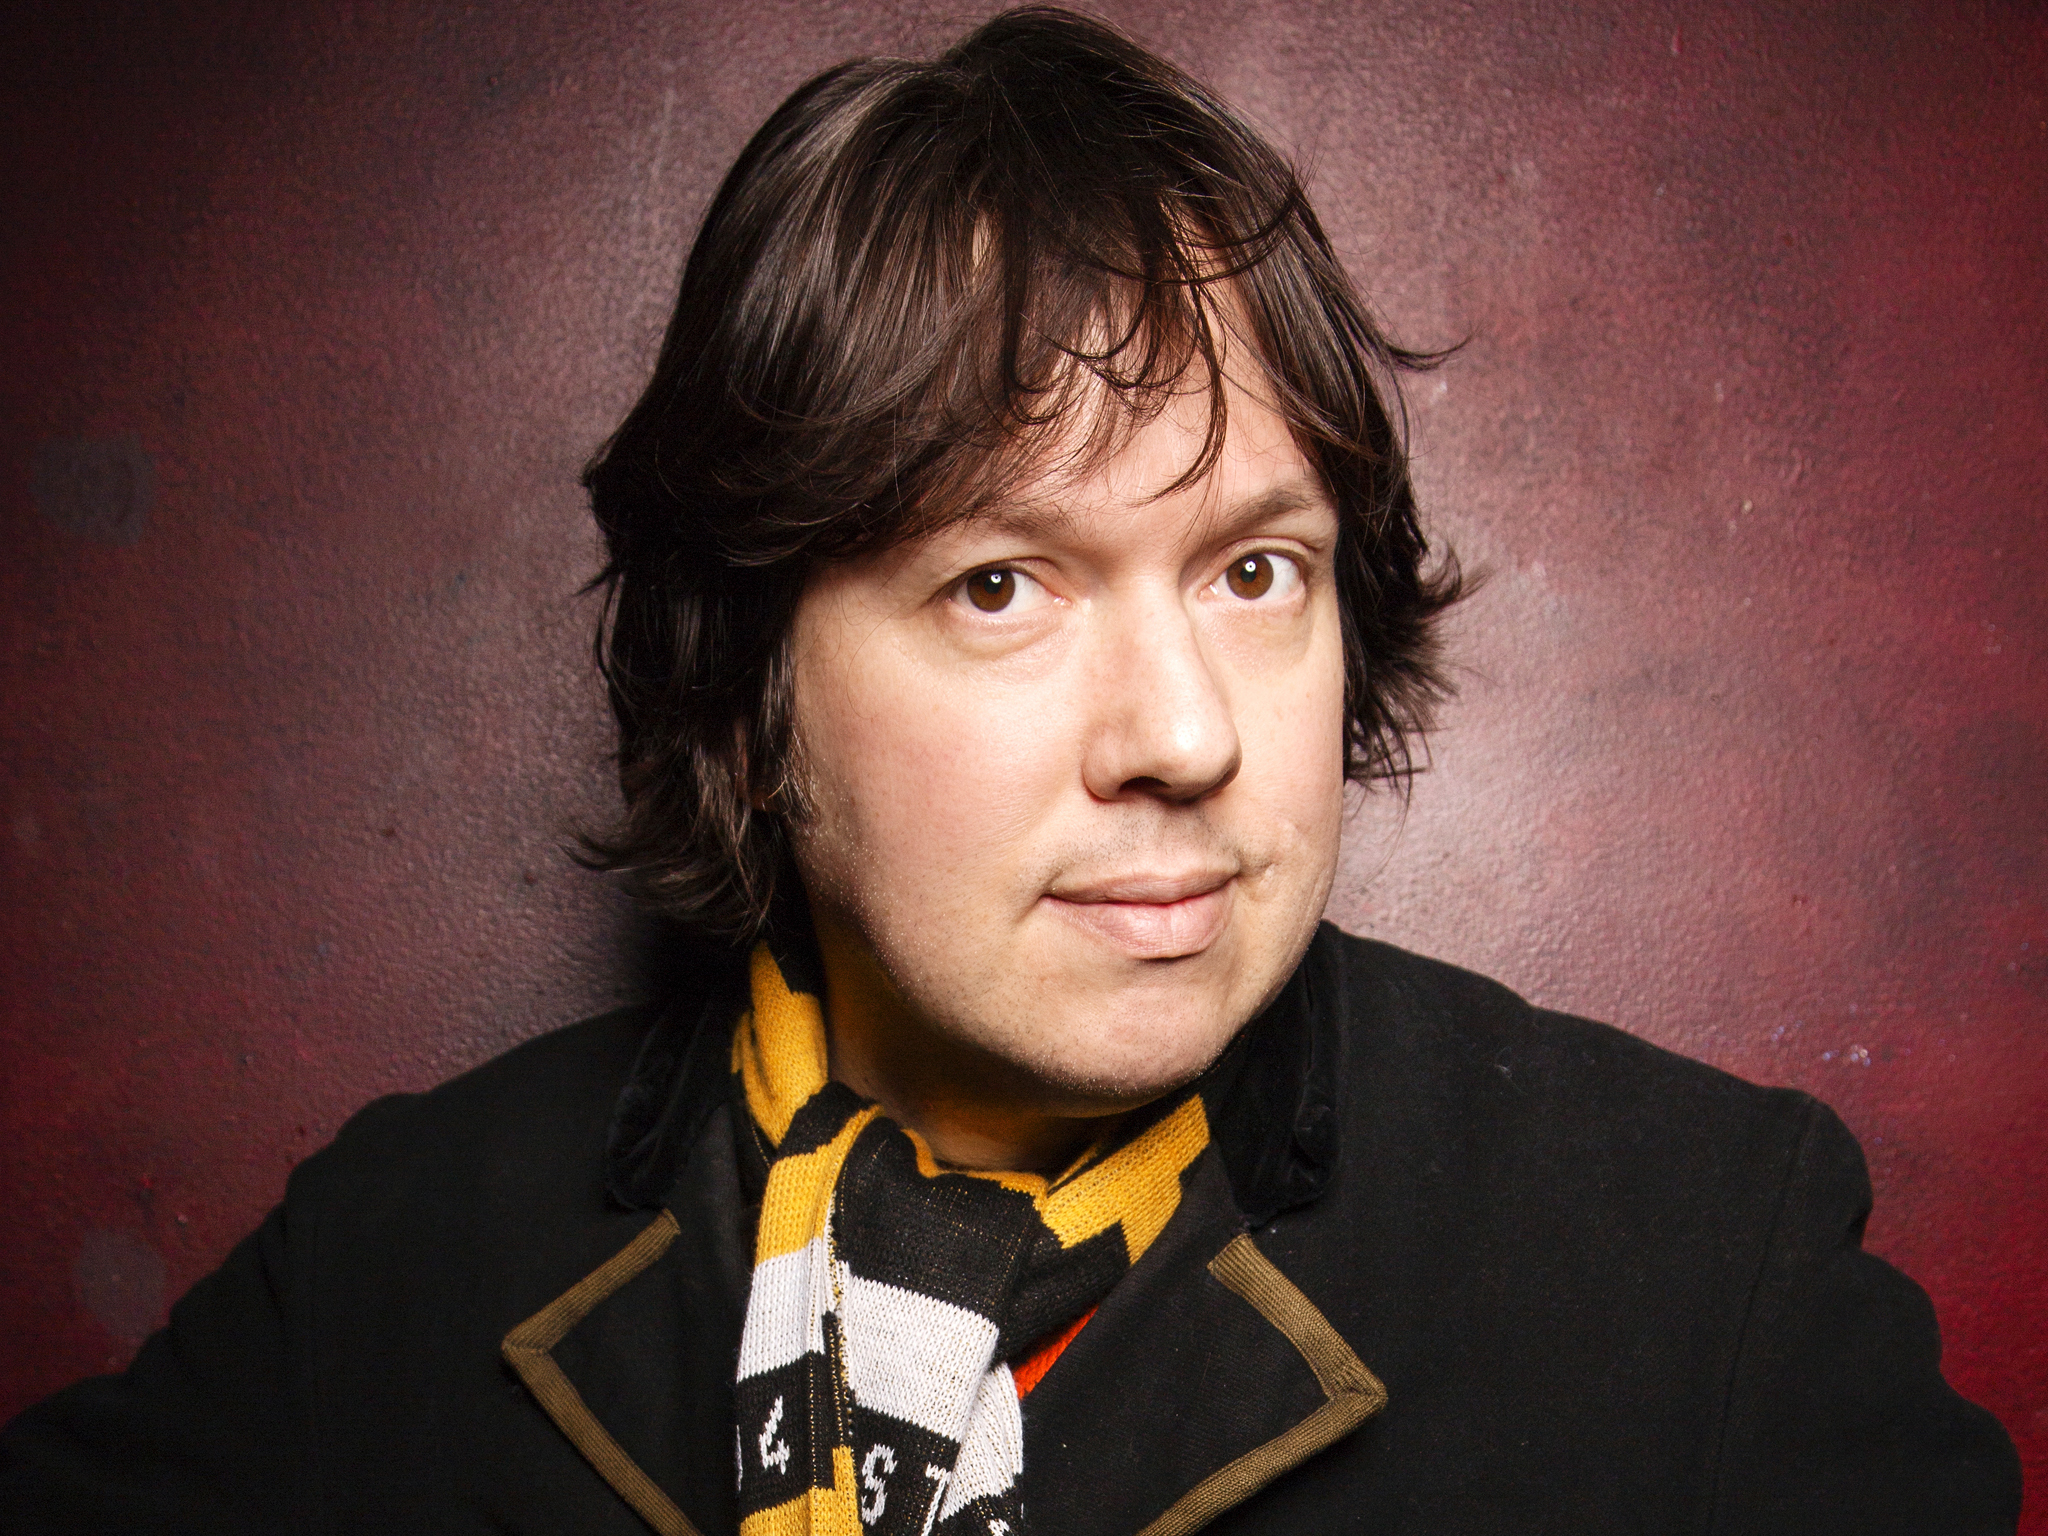 Dave Hill on what he misses most about London